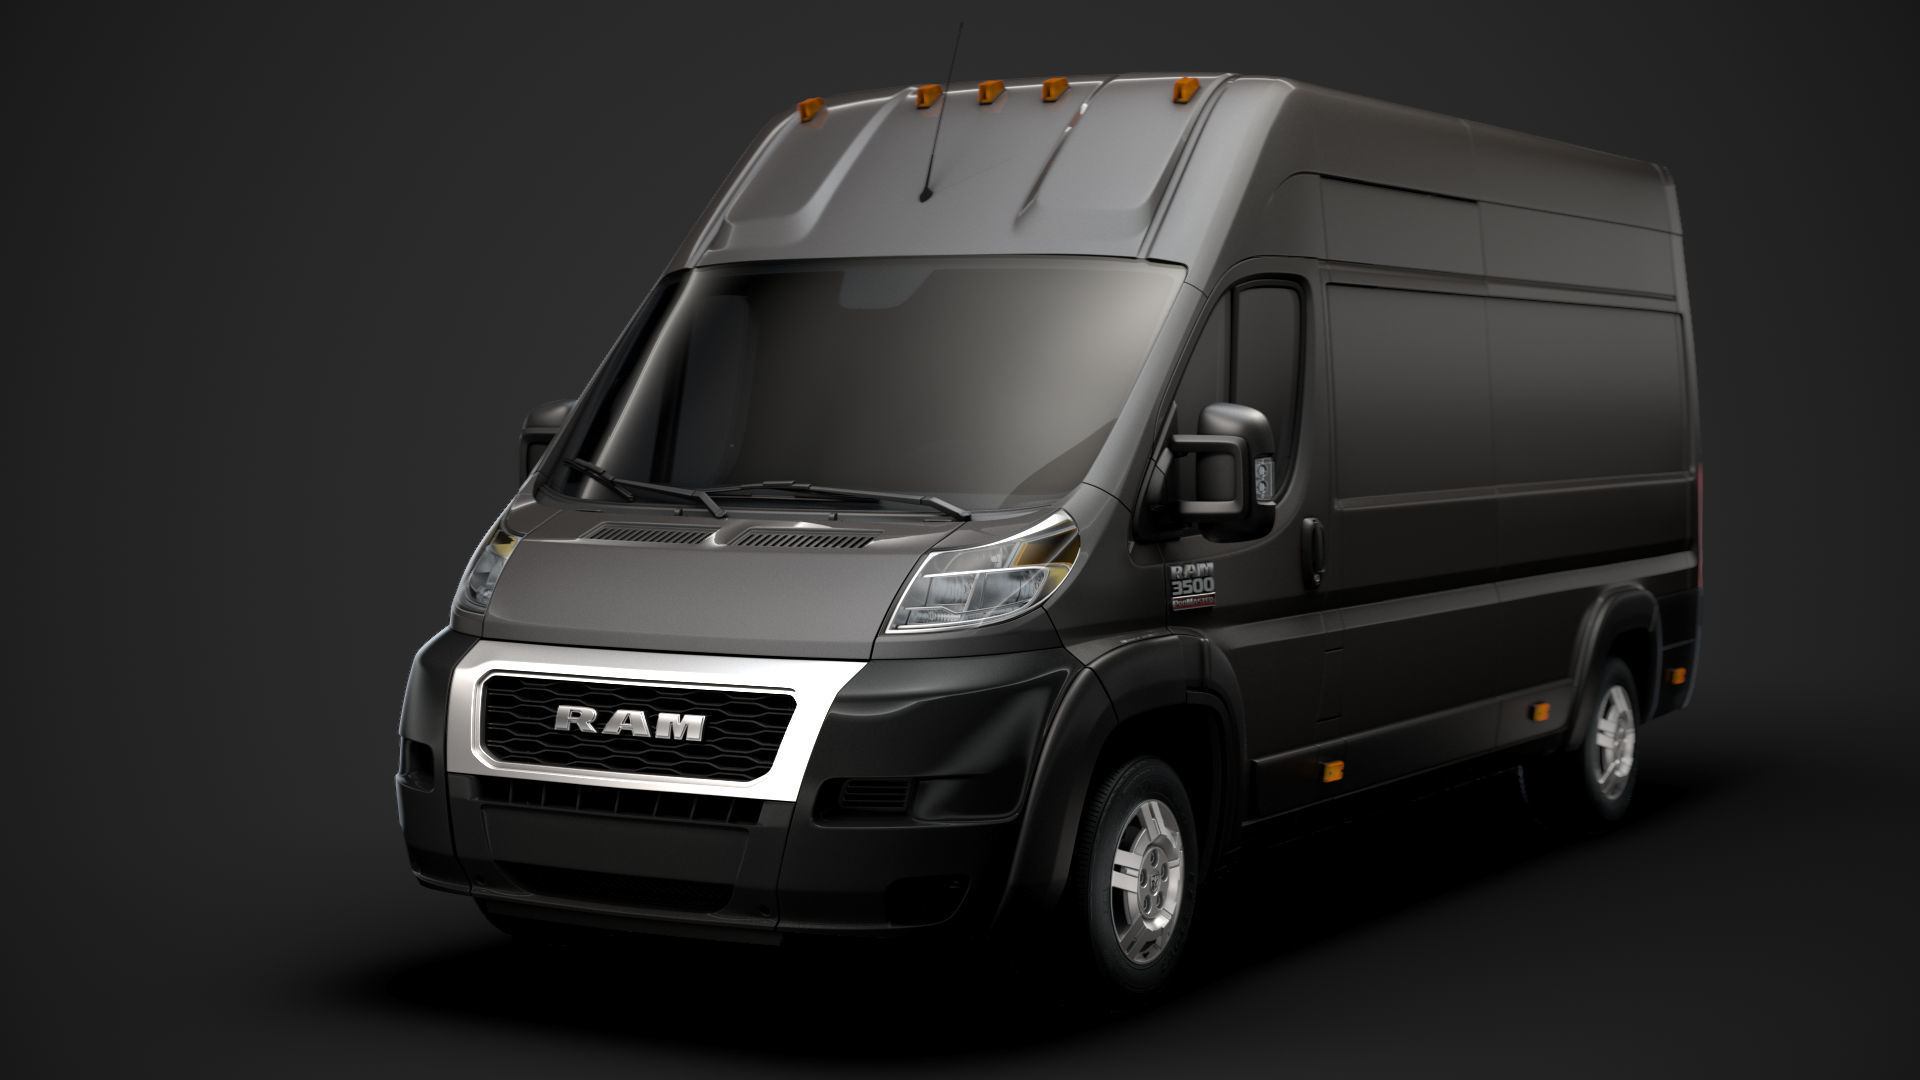 Ram Promaster Cargo 3500 H3 159WB EXT 2020